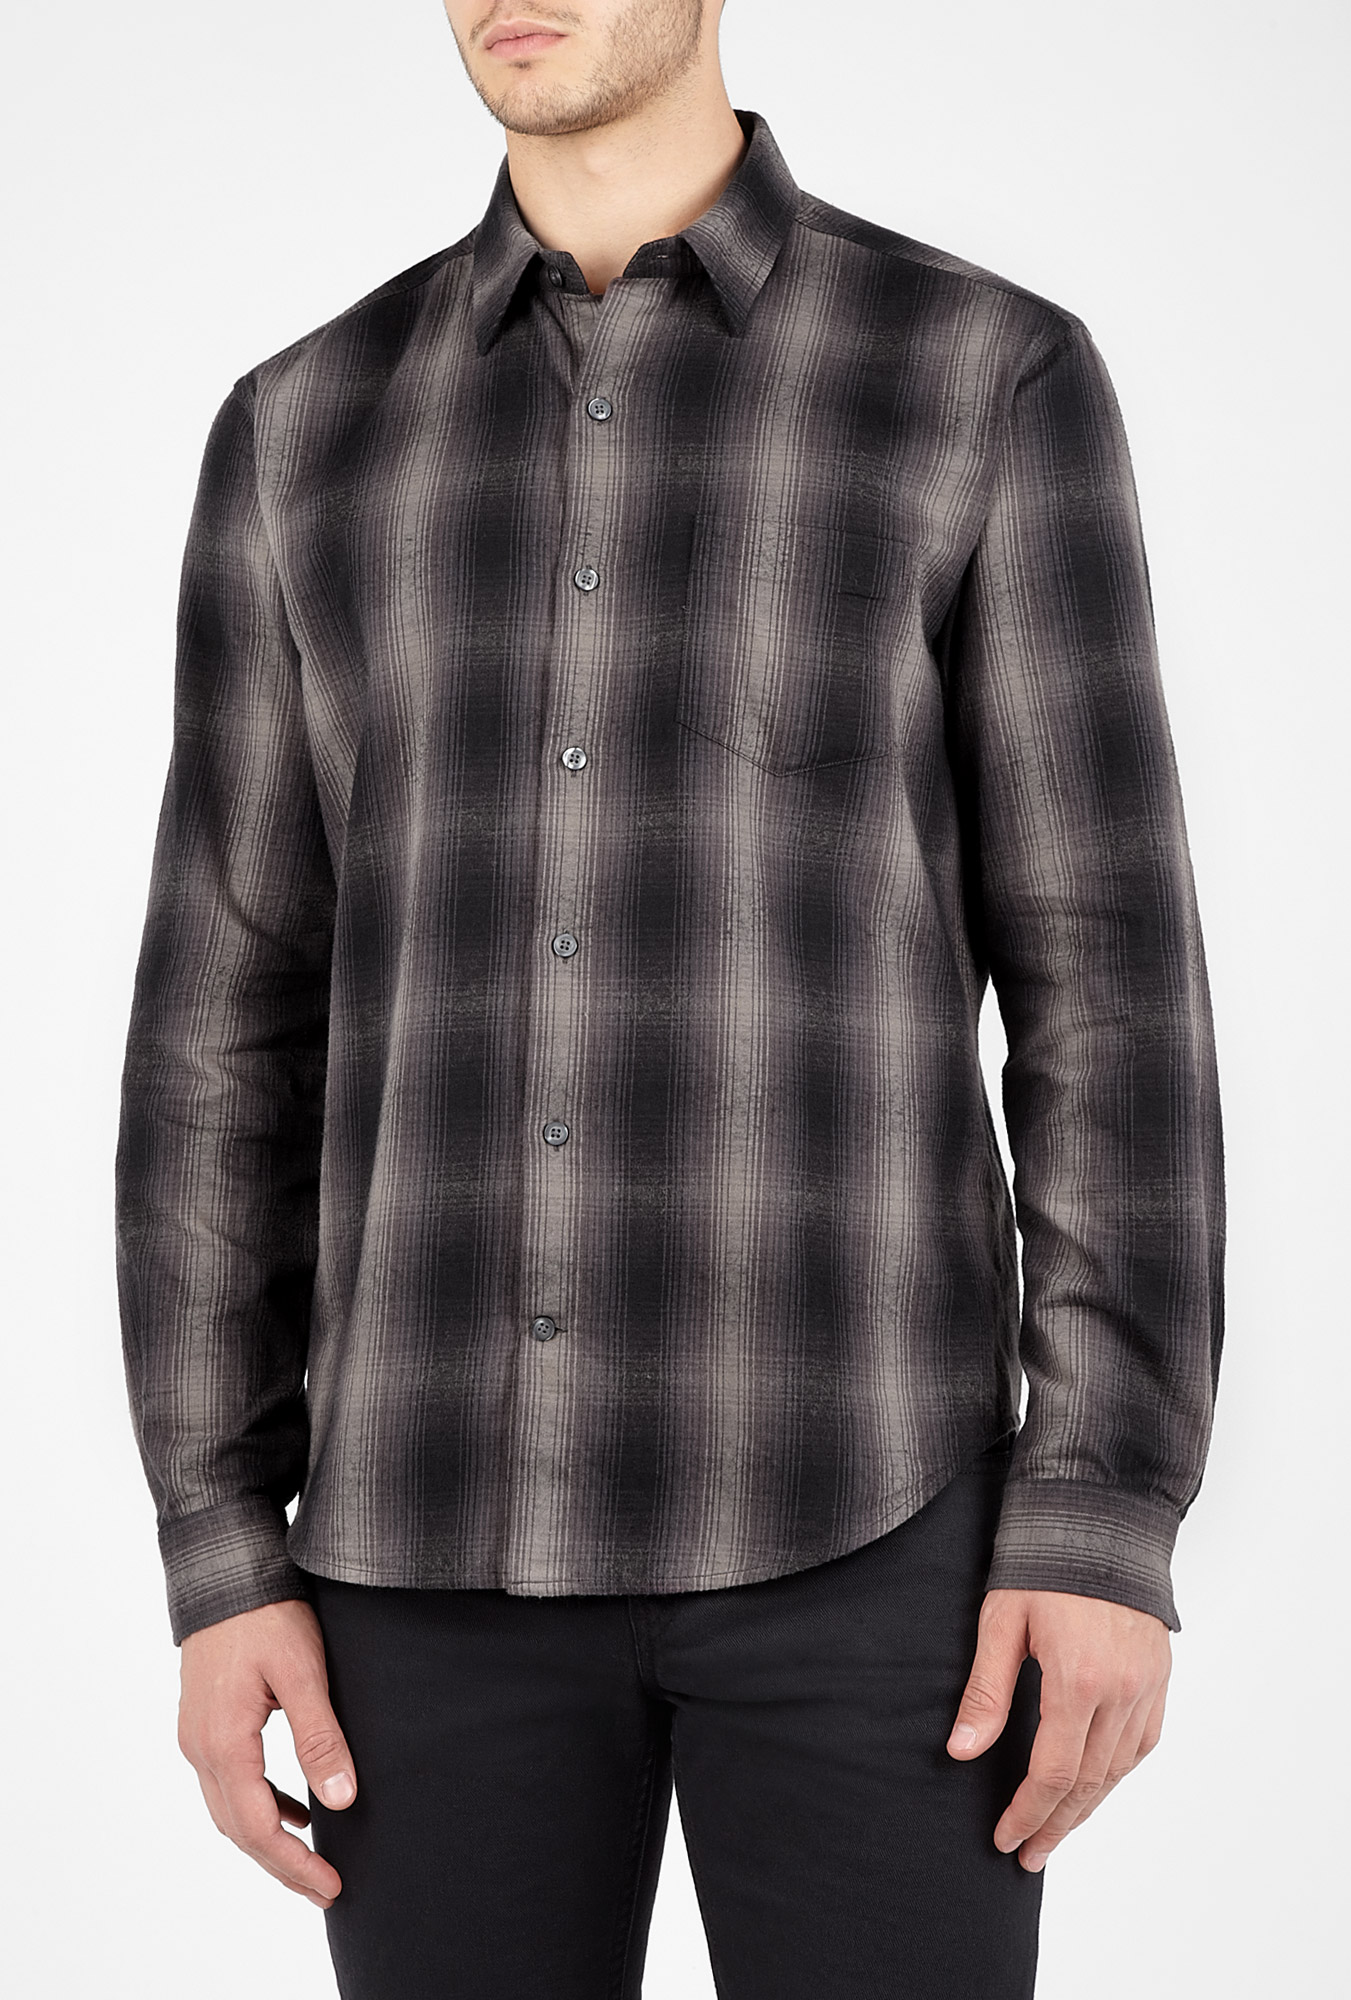 Vince Charcoal Ombre Plaid Flannel Shirt In Gray For Men